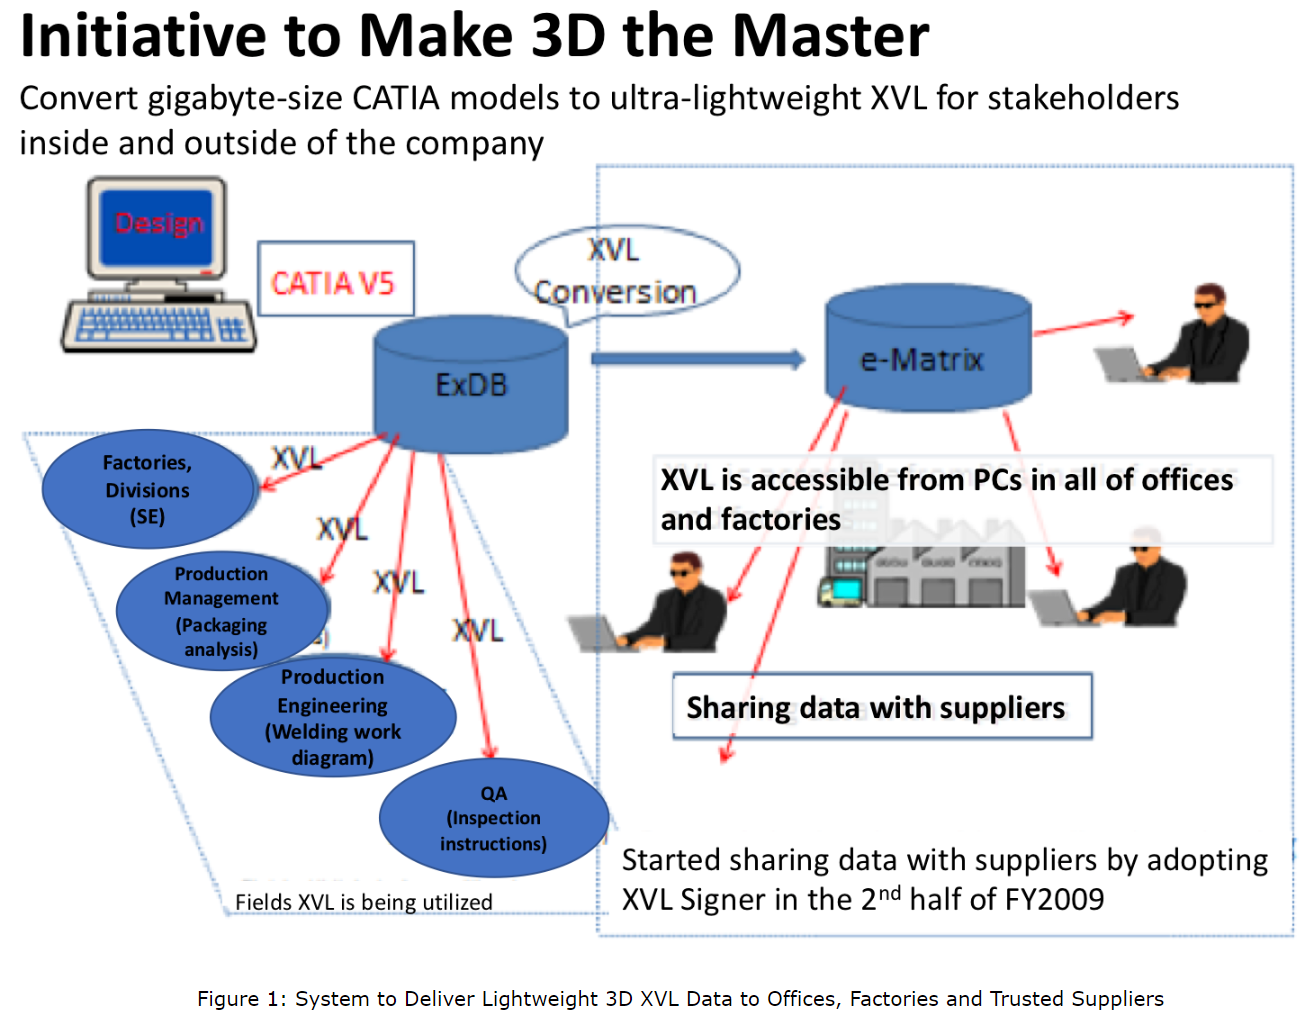 Diagram of system that delivers lightweight 3D XVL data offices, factories, and trusted suppliers.